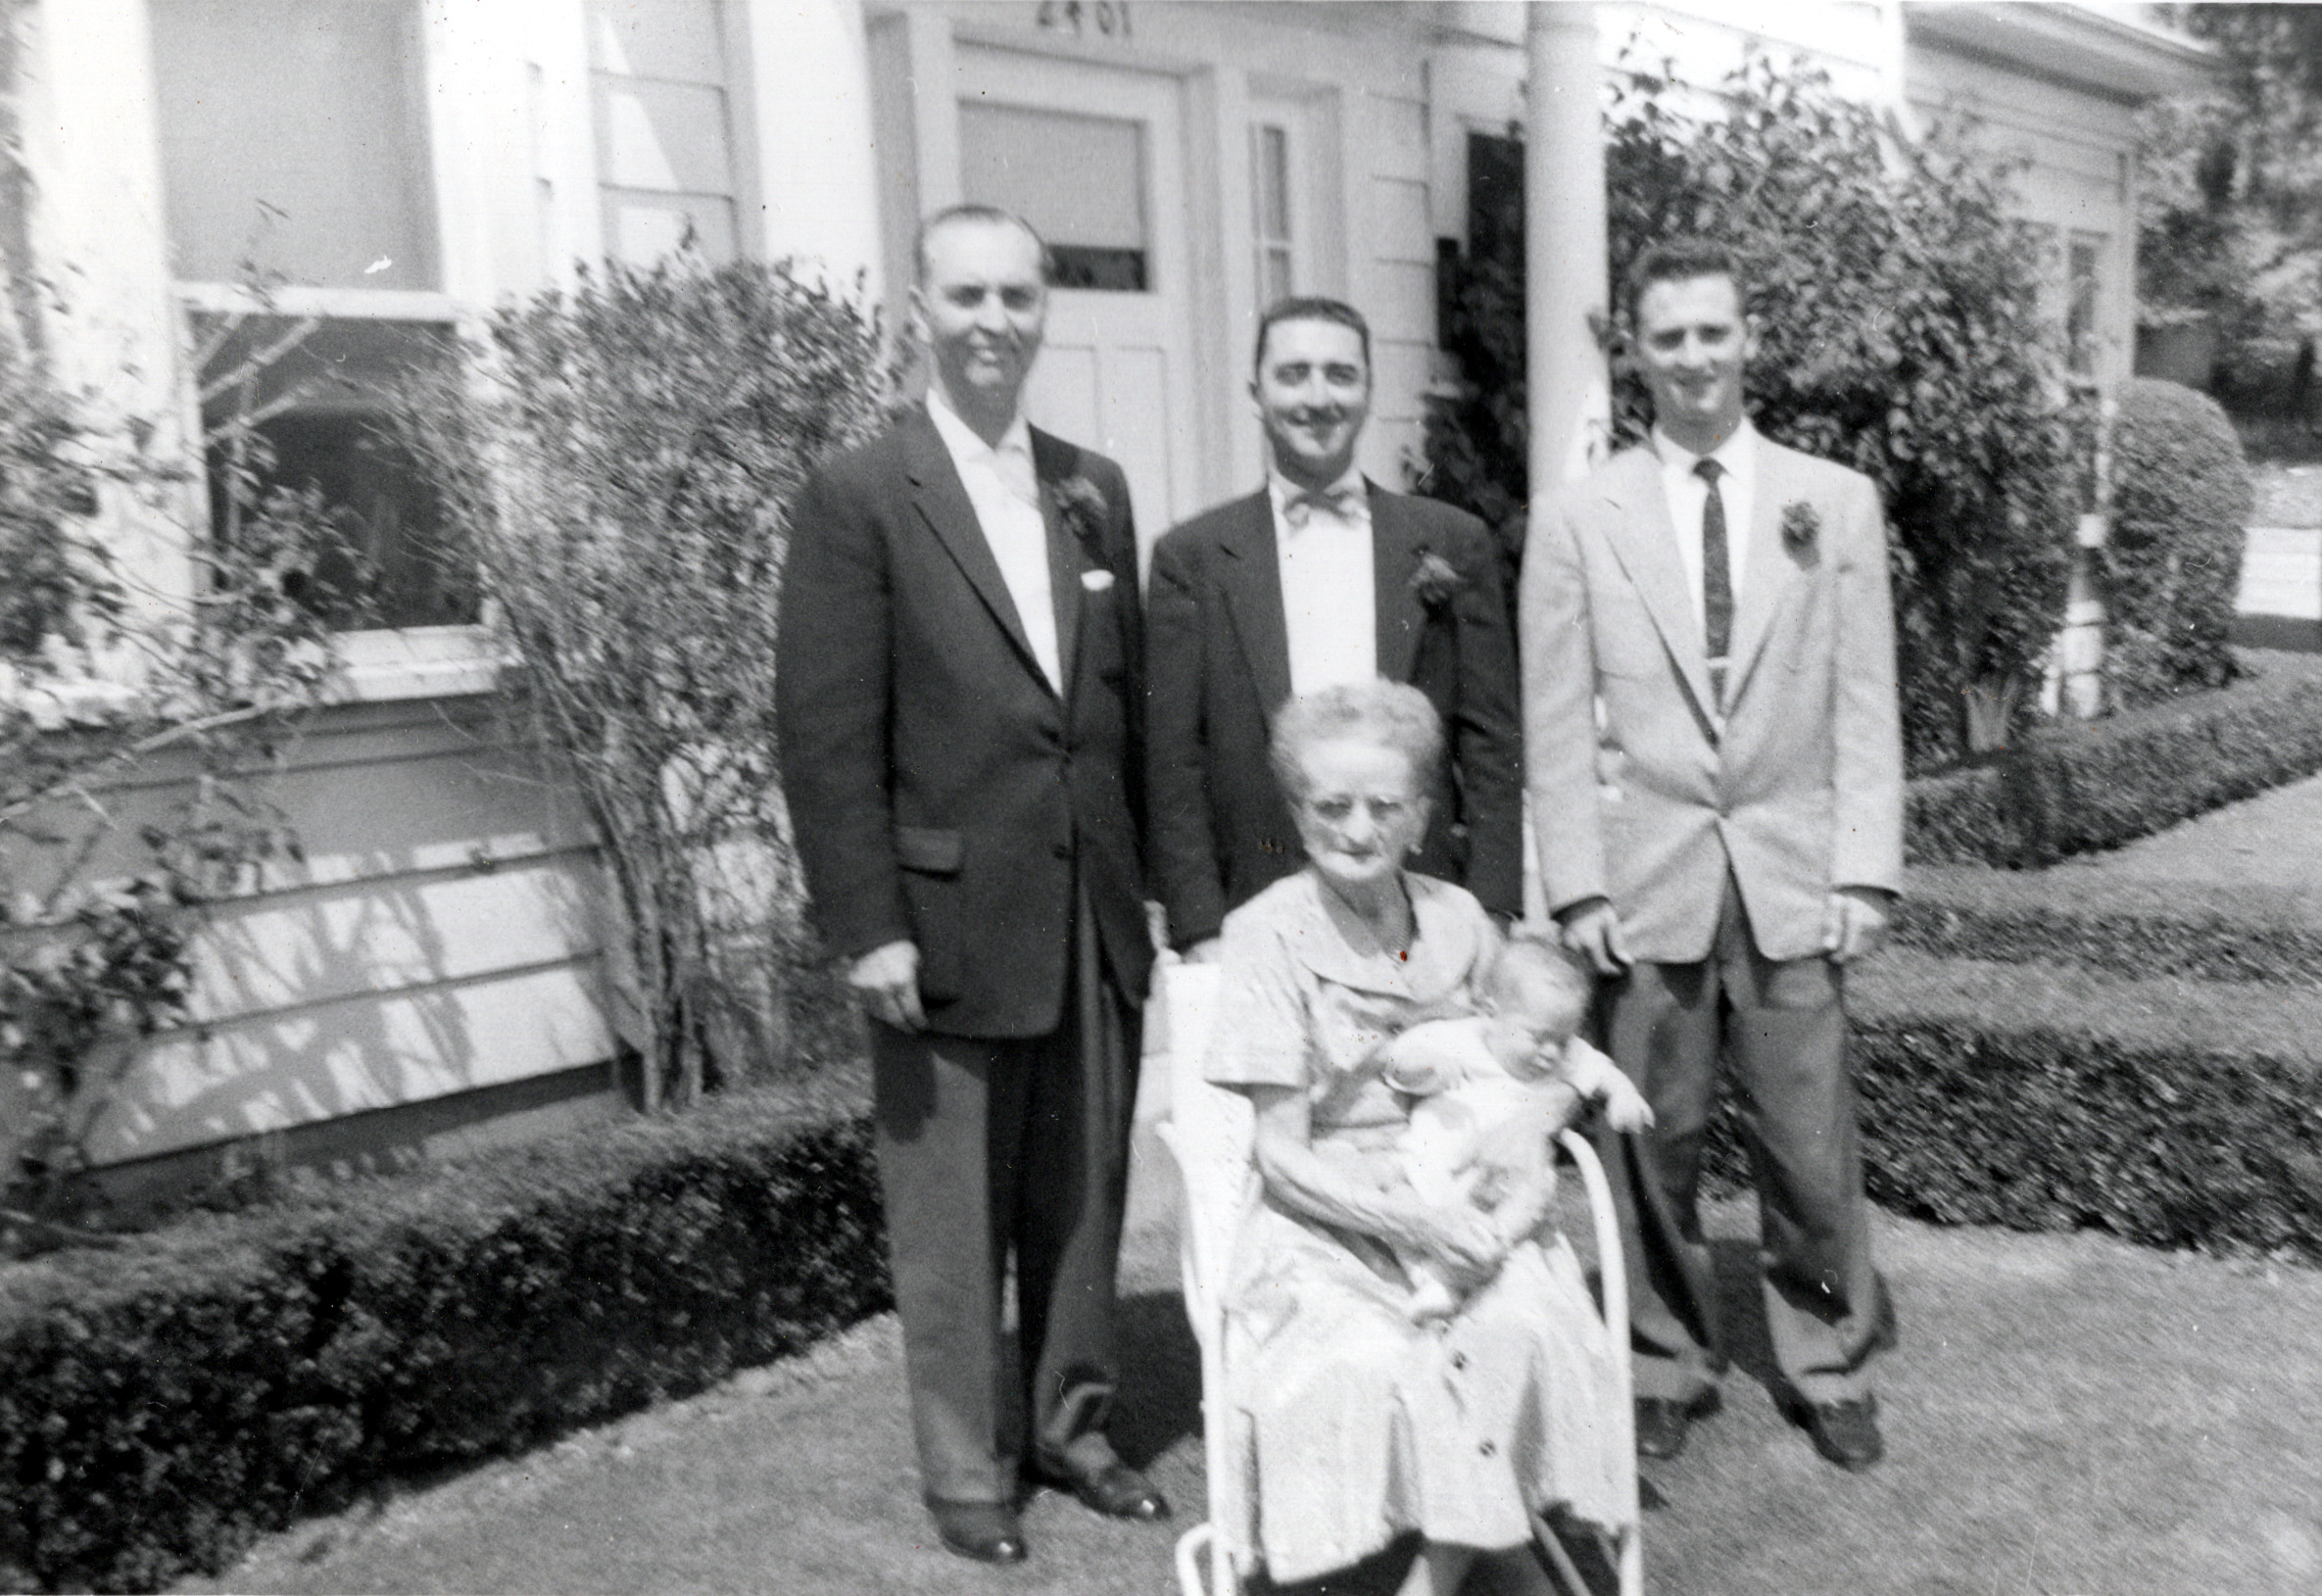 5 Generations - Buddy with Dad, Grandfather, Great Grandfather & Great Great Grandmother